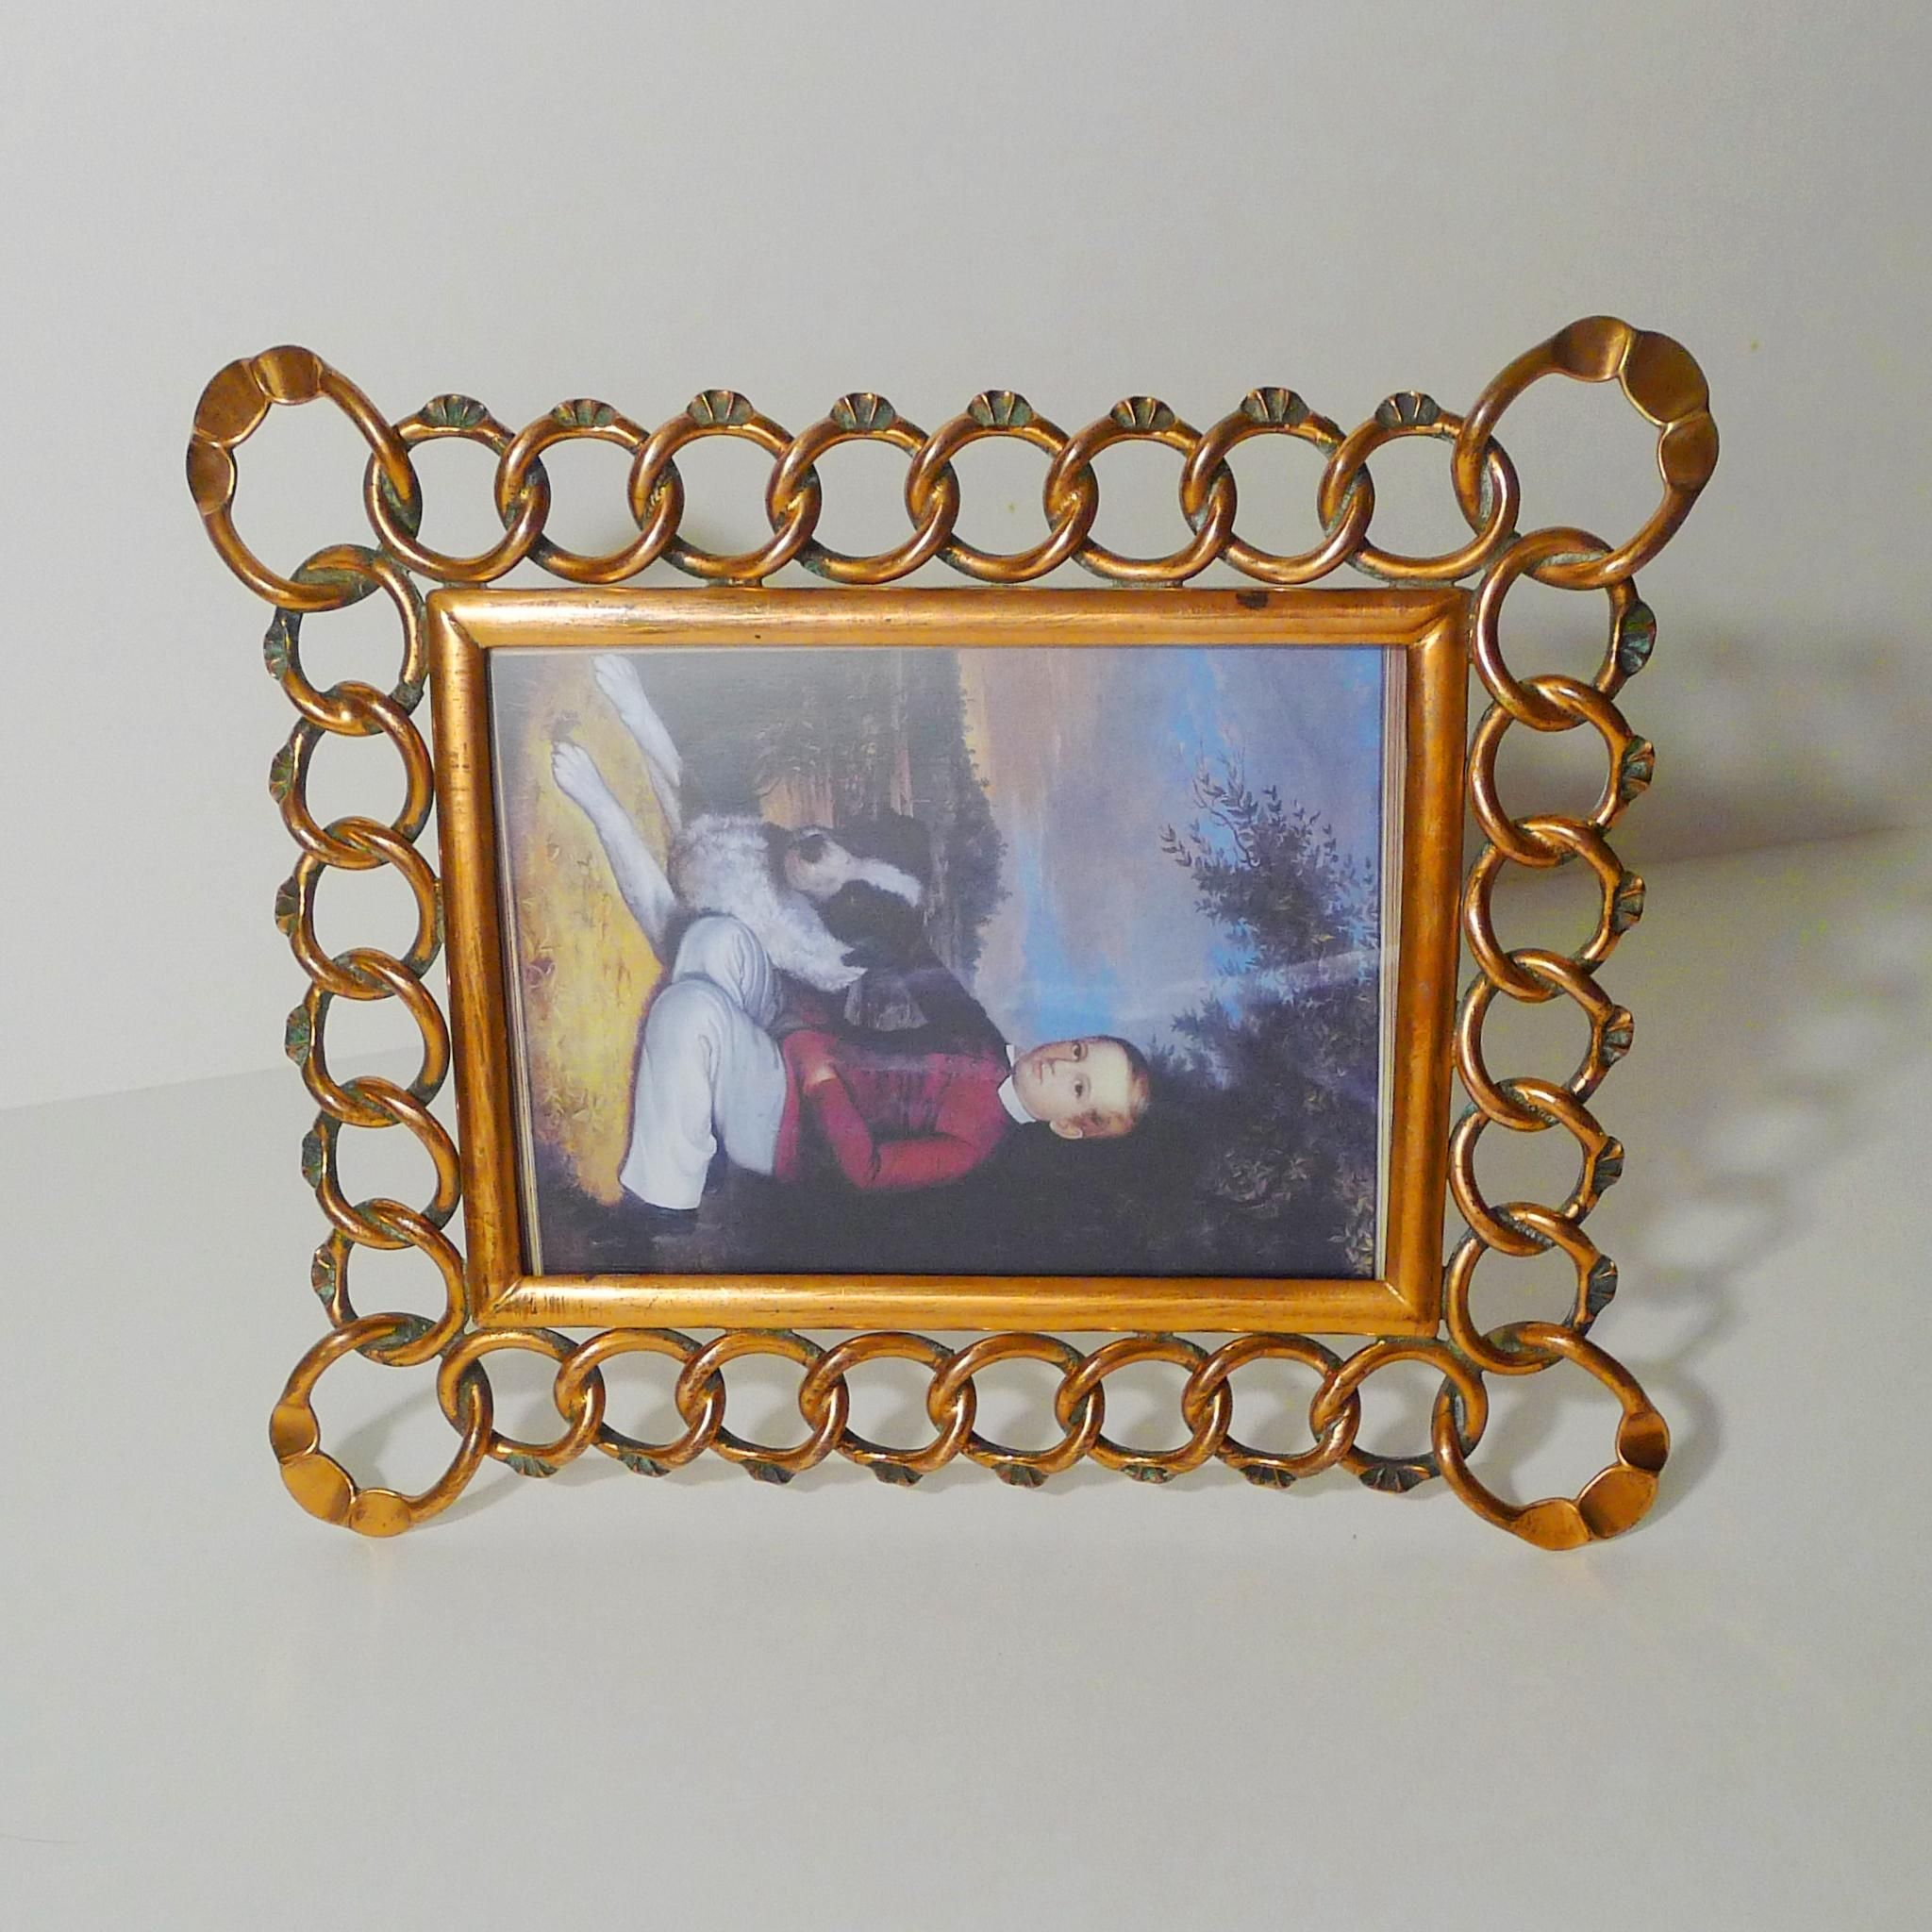 Copper drgm horizontal vertical antique picture frame copper drgm horizontal vertical antique picture frame jeuxipadfo Image collections